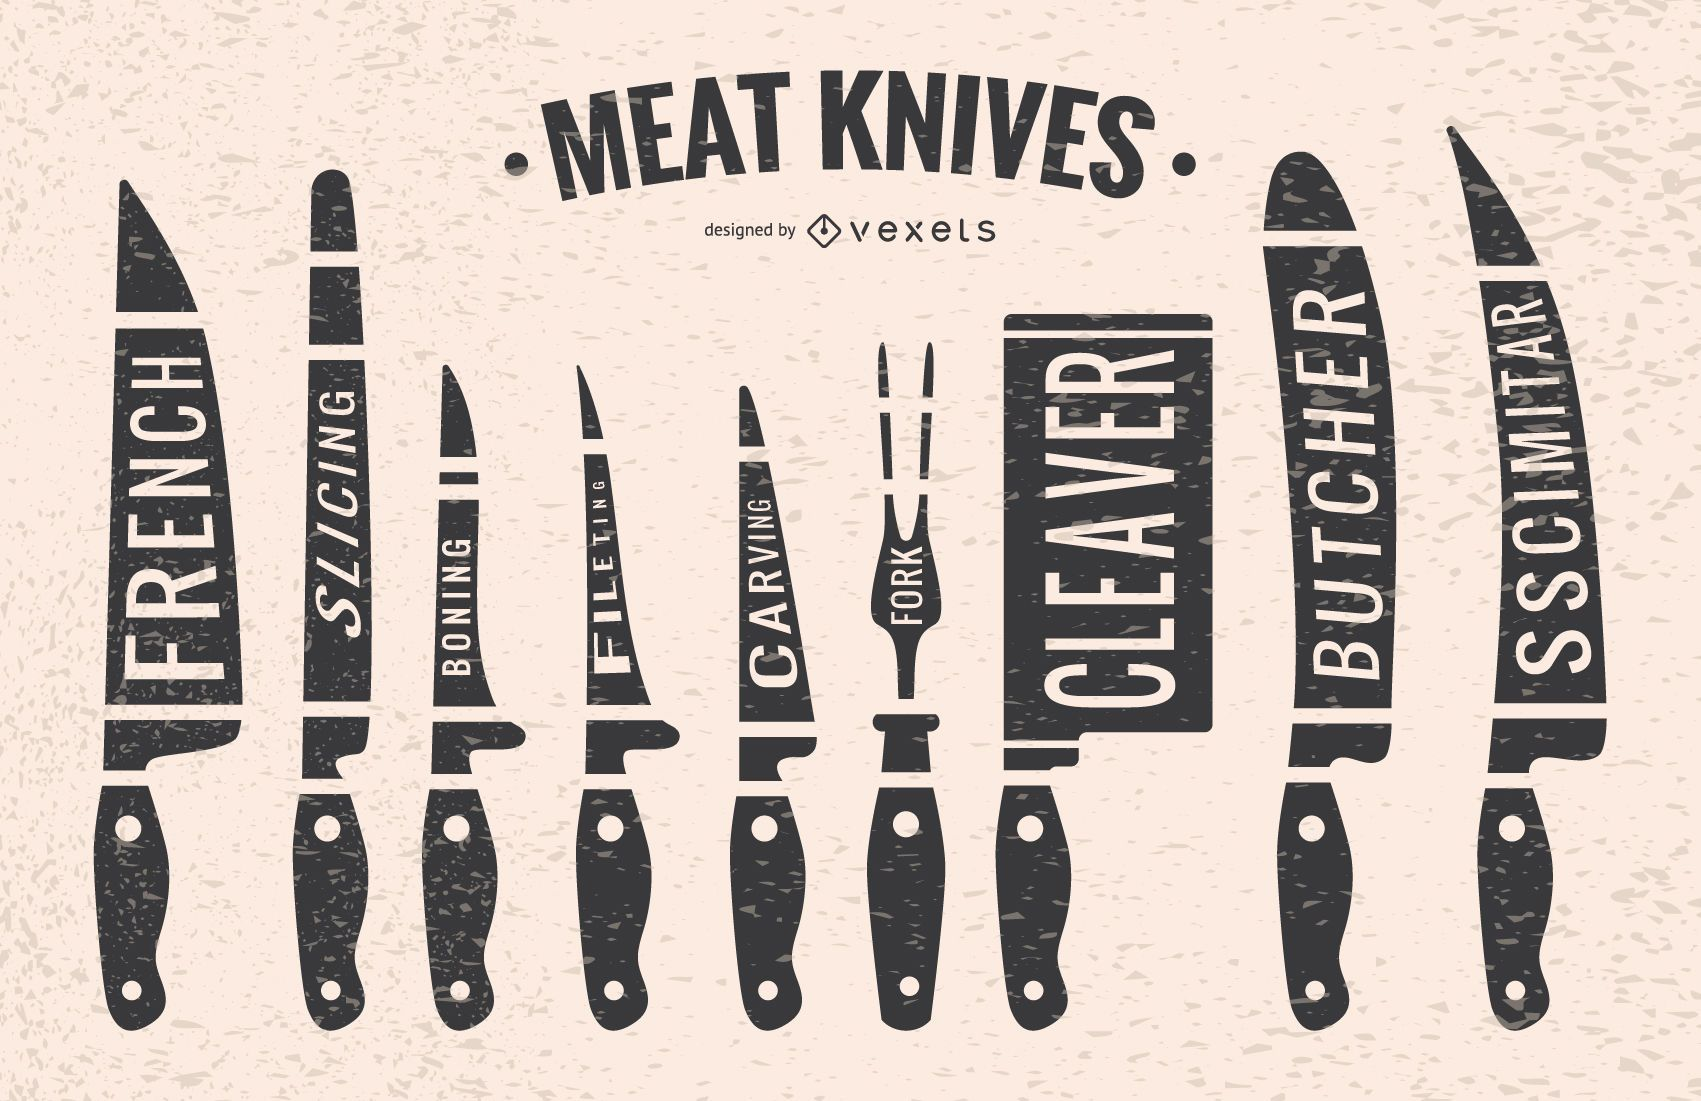 Meat knives